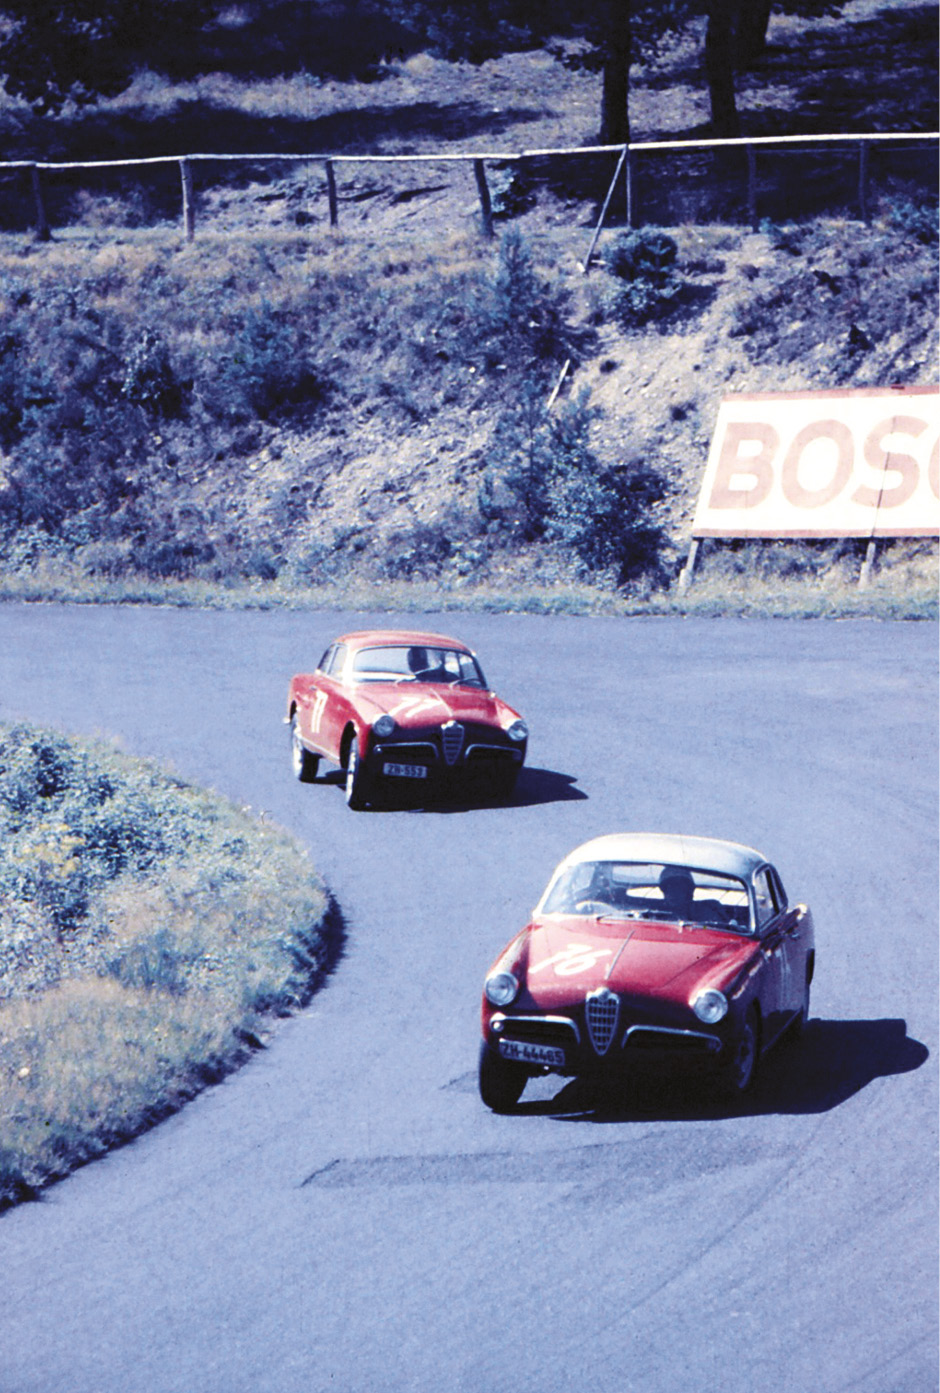 Alfa Romeo Giulietta Veloces battle it out during a support race – the Rheinland-Pfalz Preis for cars up to 1300cc. Lenses tended to be quite short back then, but access from public areas was good...